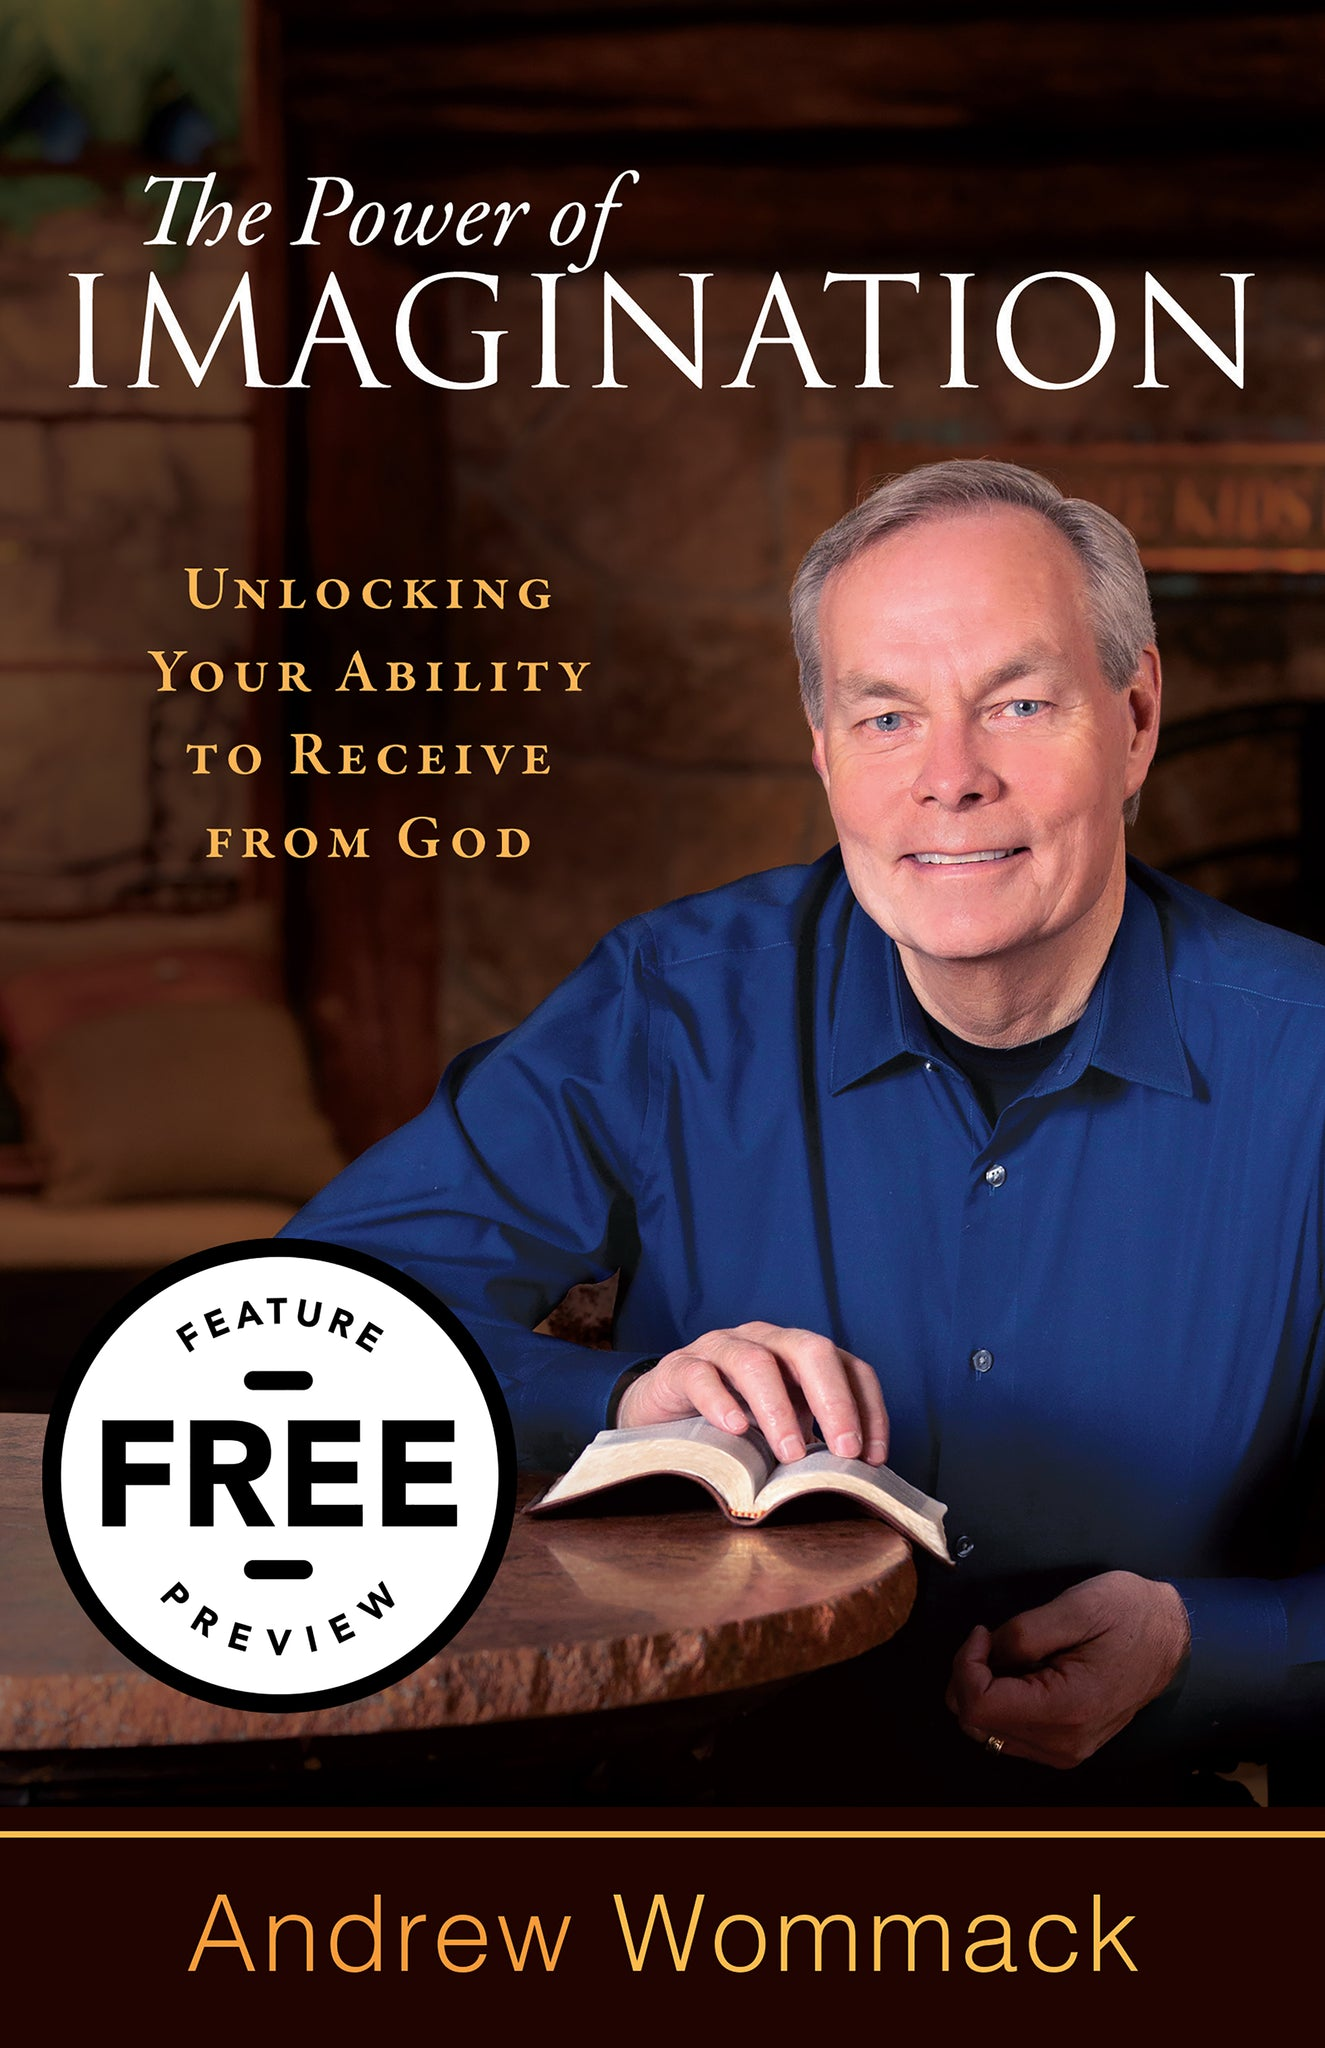 The Power of Imagination Free Feature Message (PDF Download)